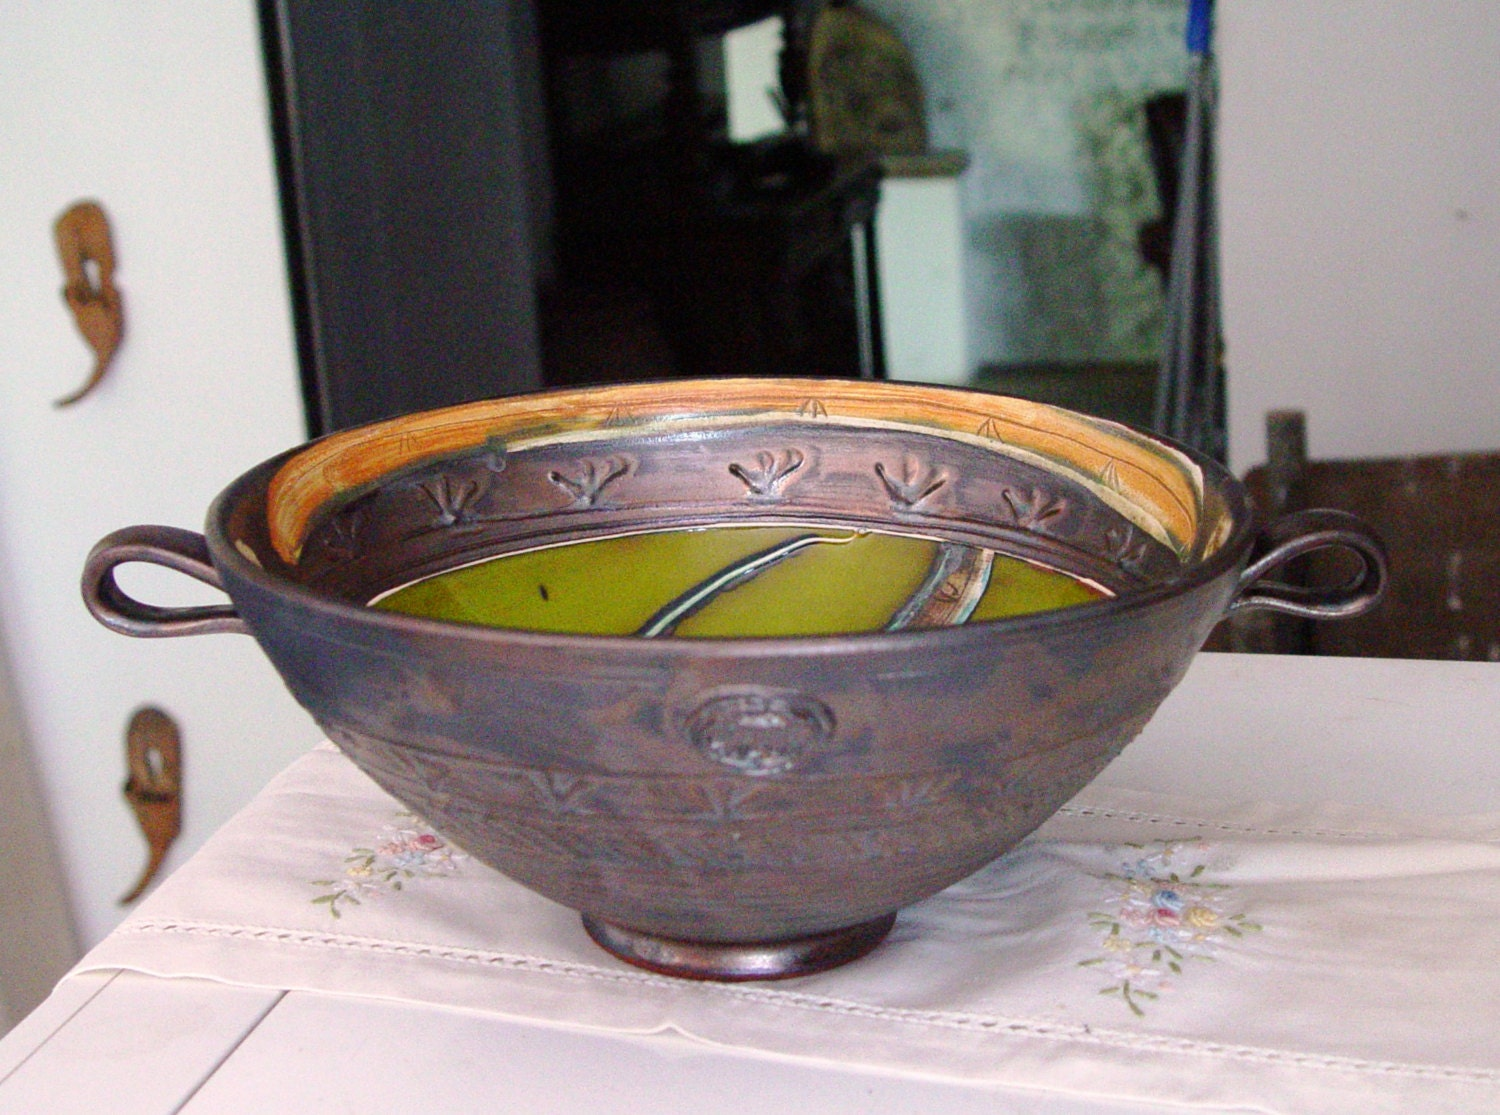 Pottery Wedding Gifts: Handmade Pottery Bowl Rustic Wedding Gift Pottery Fruit